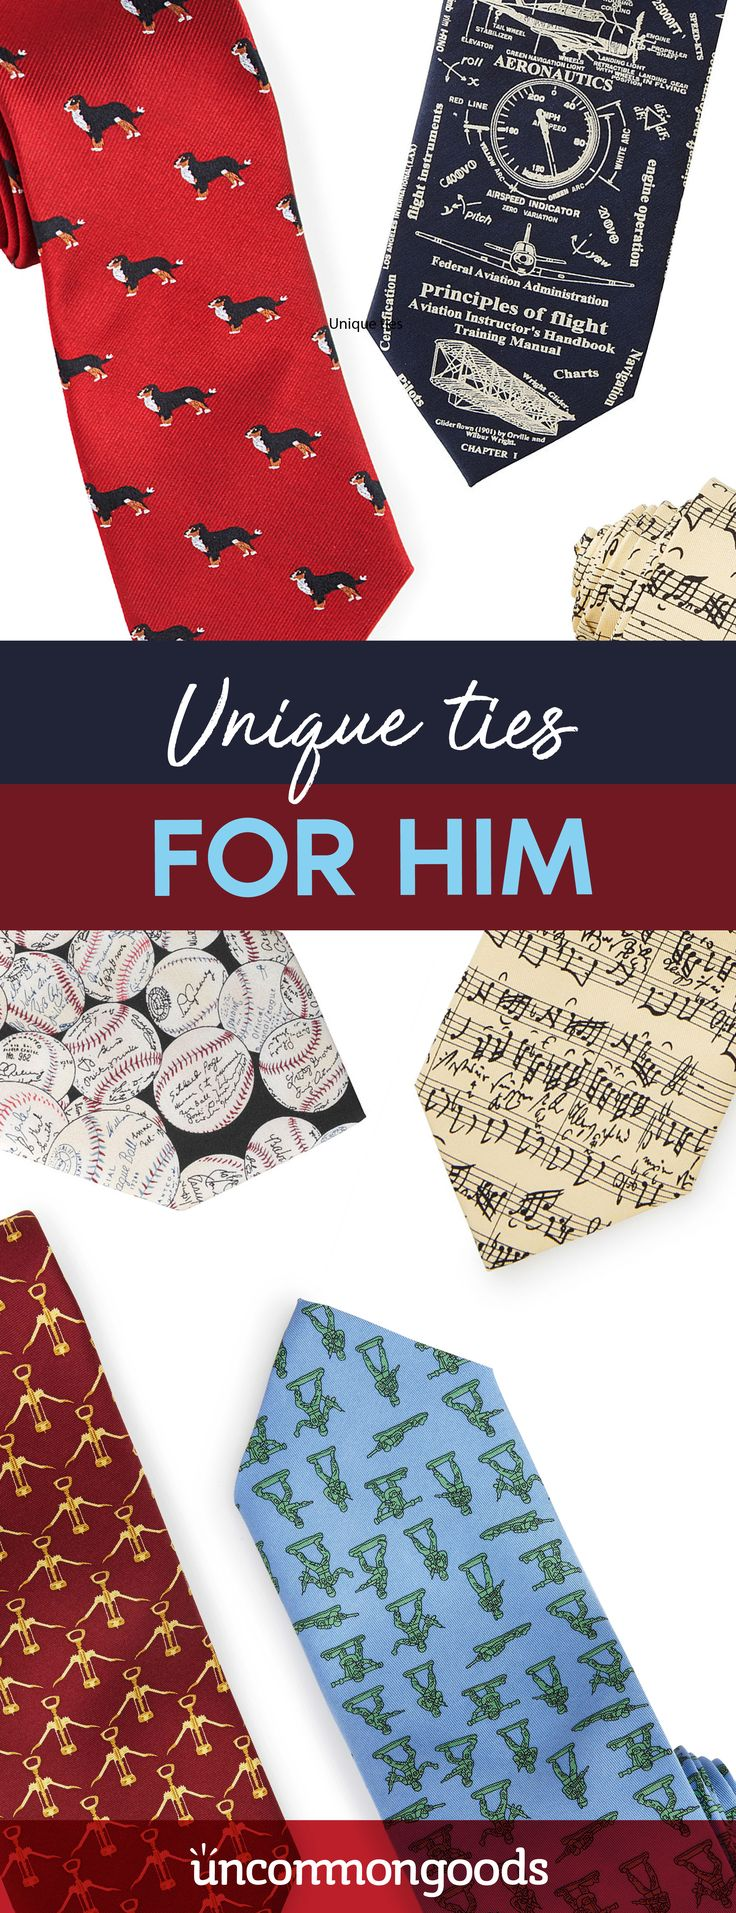 Find bold, funny ties, unique ties and unusual ties for big personalities at UncommonGoods.